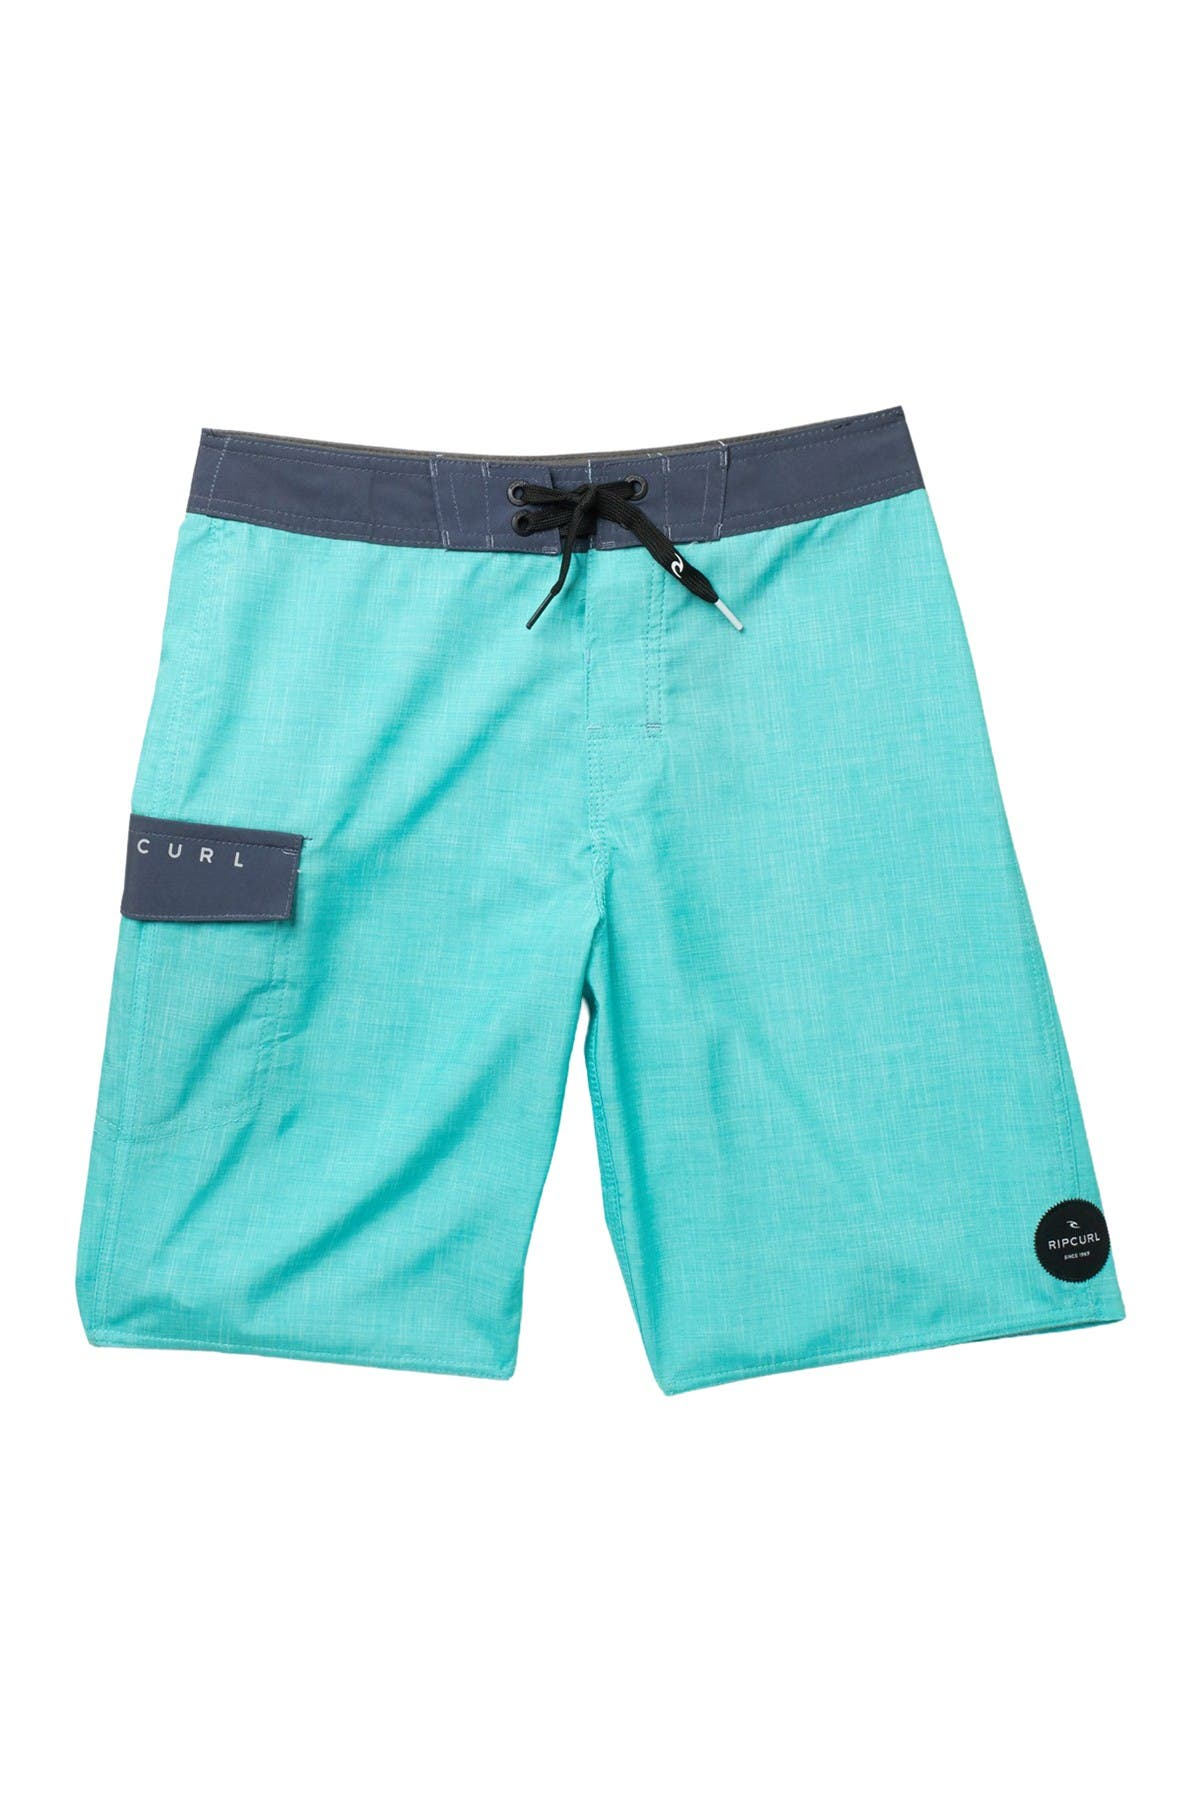 Image of Rip Curl Core Board Shorts